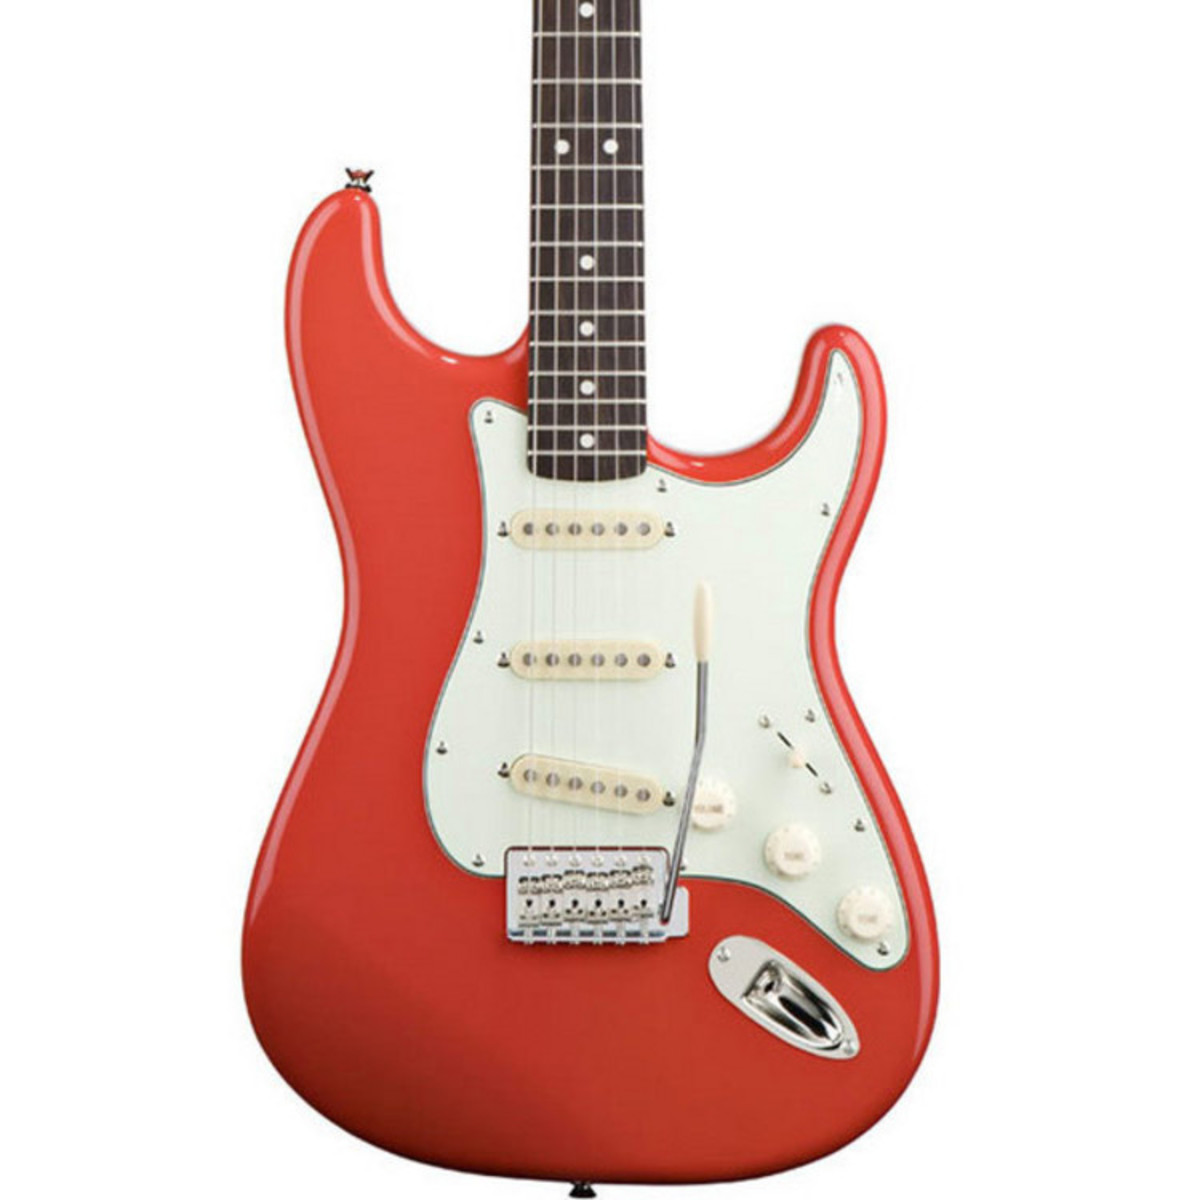 disc squier by fender simon neil stratocaster biffy clyro signature at gear4music. Black Bedroom Furniture Sets. Home Design Ideas